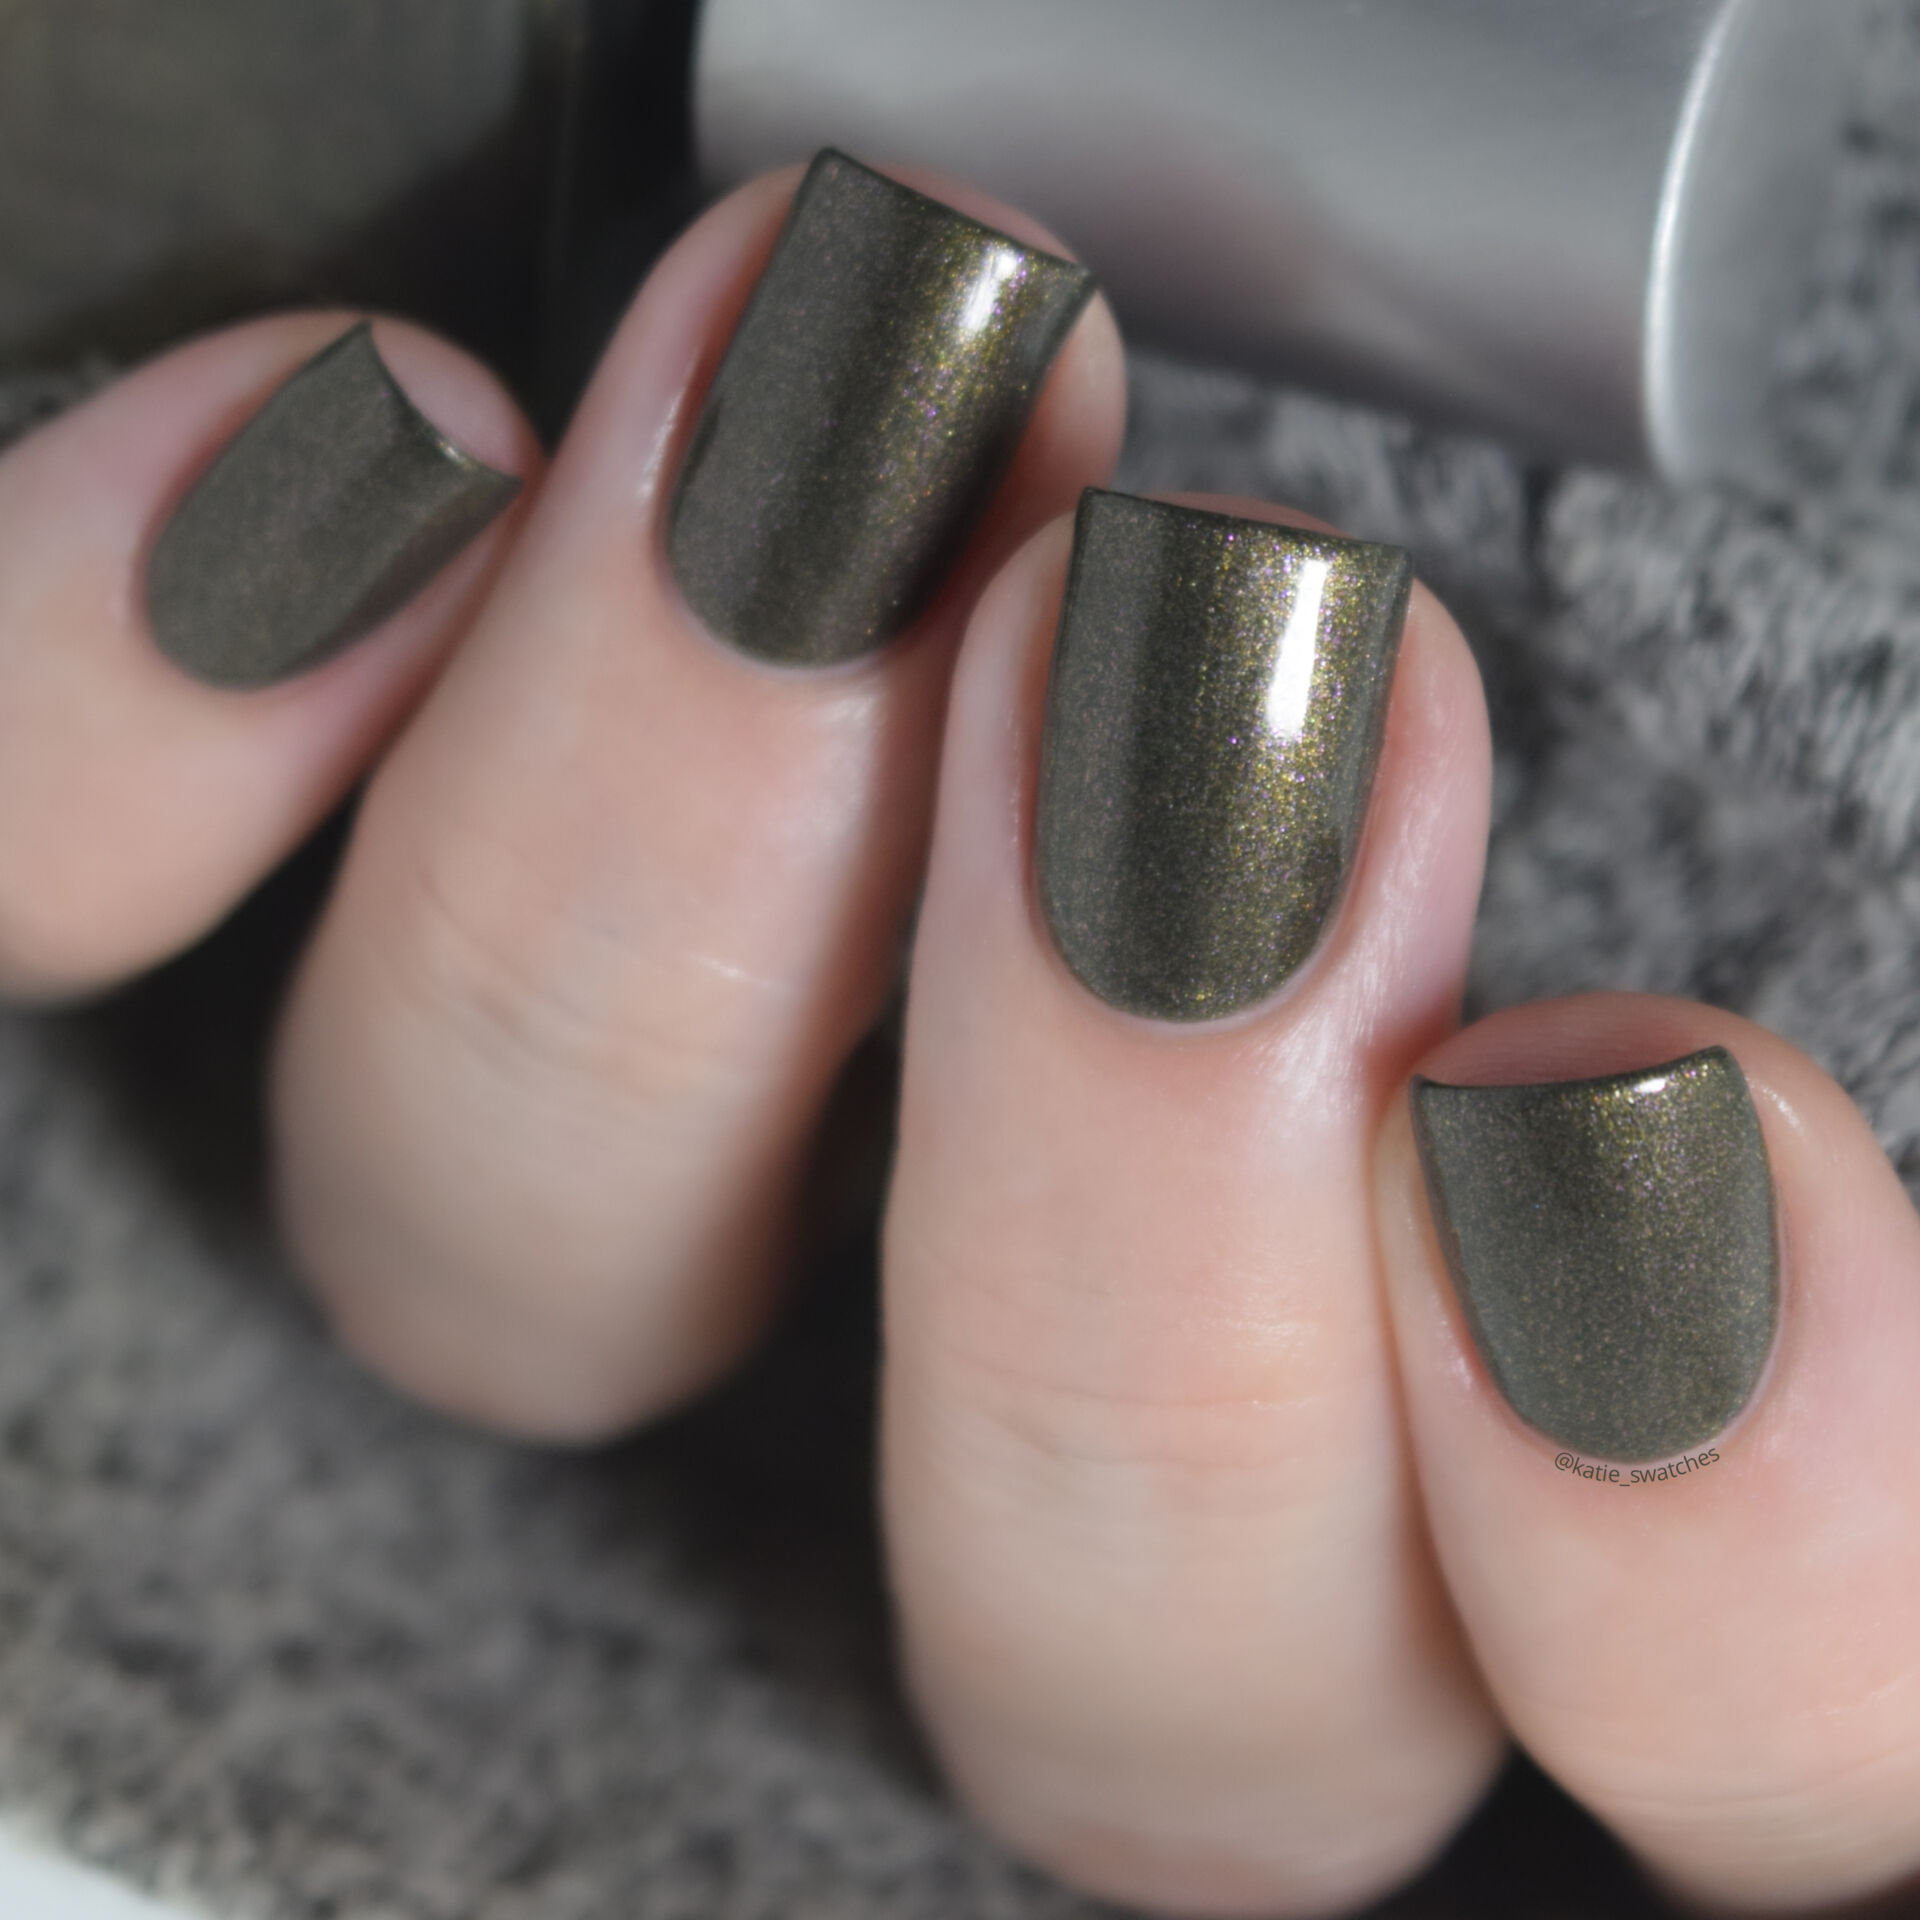 Rescue Beauty Lounge RBL Anne olive green nail polish with gold/pink shimmer. nail polish swatch